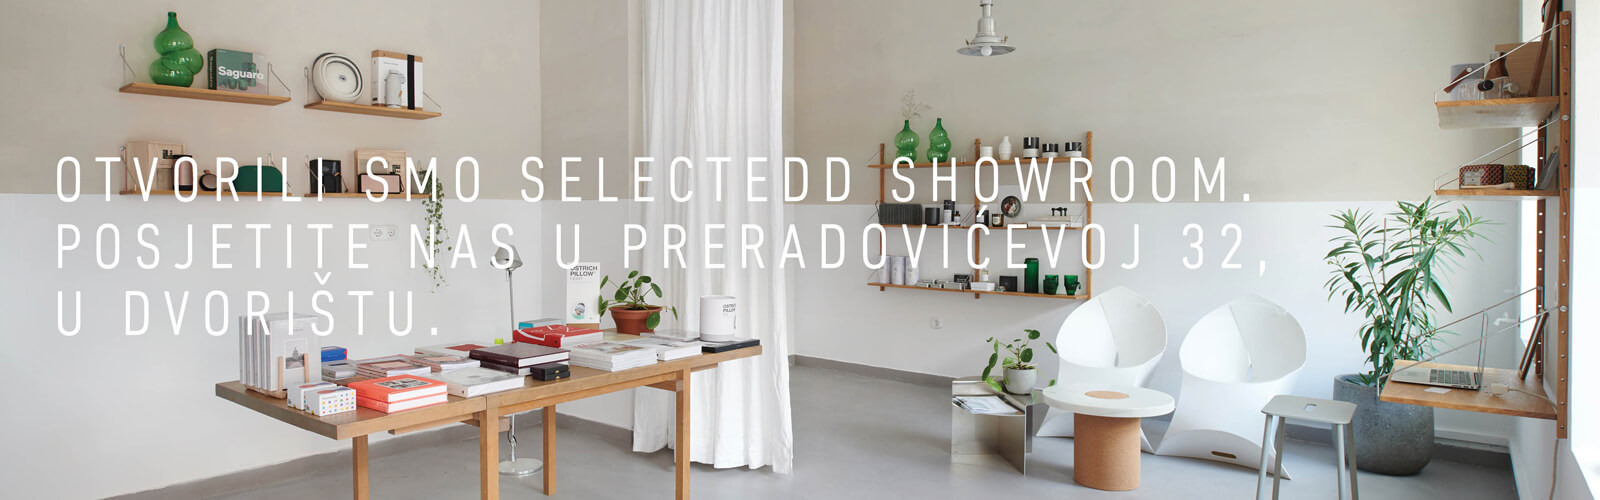 selectedd_showroom_1600x500_1